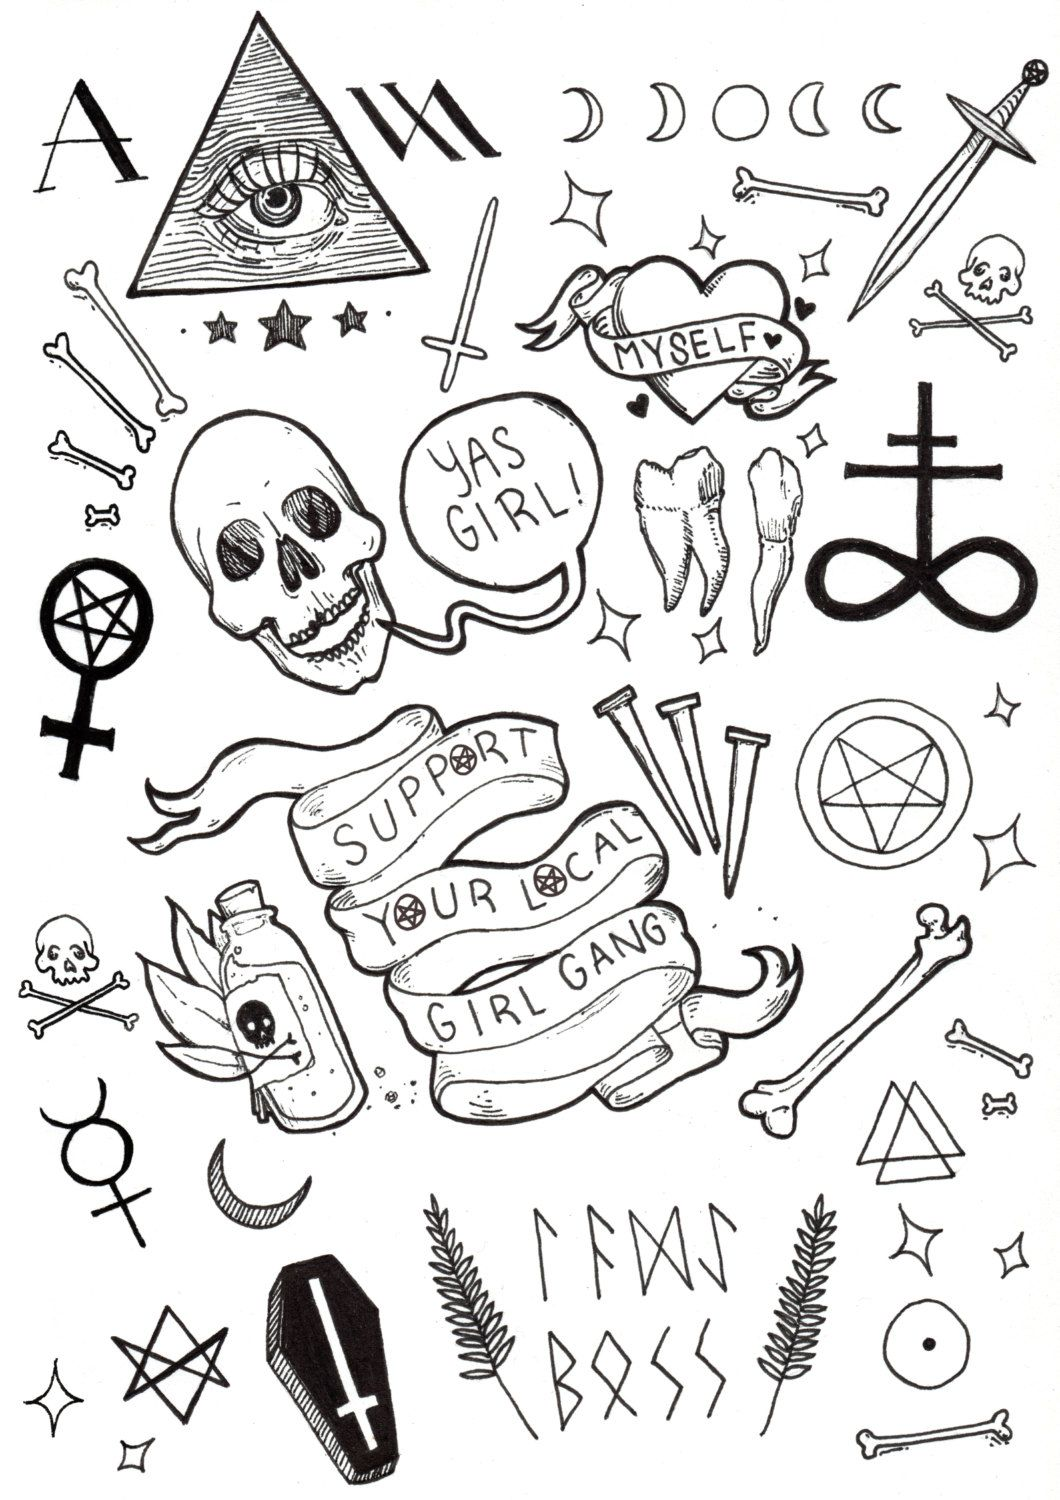 Pin By Pong On Skins Needles Coffin Tattoo Tattoo Flash Art Tattoo Drawings